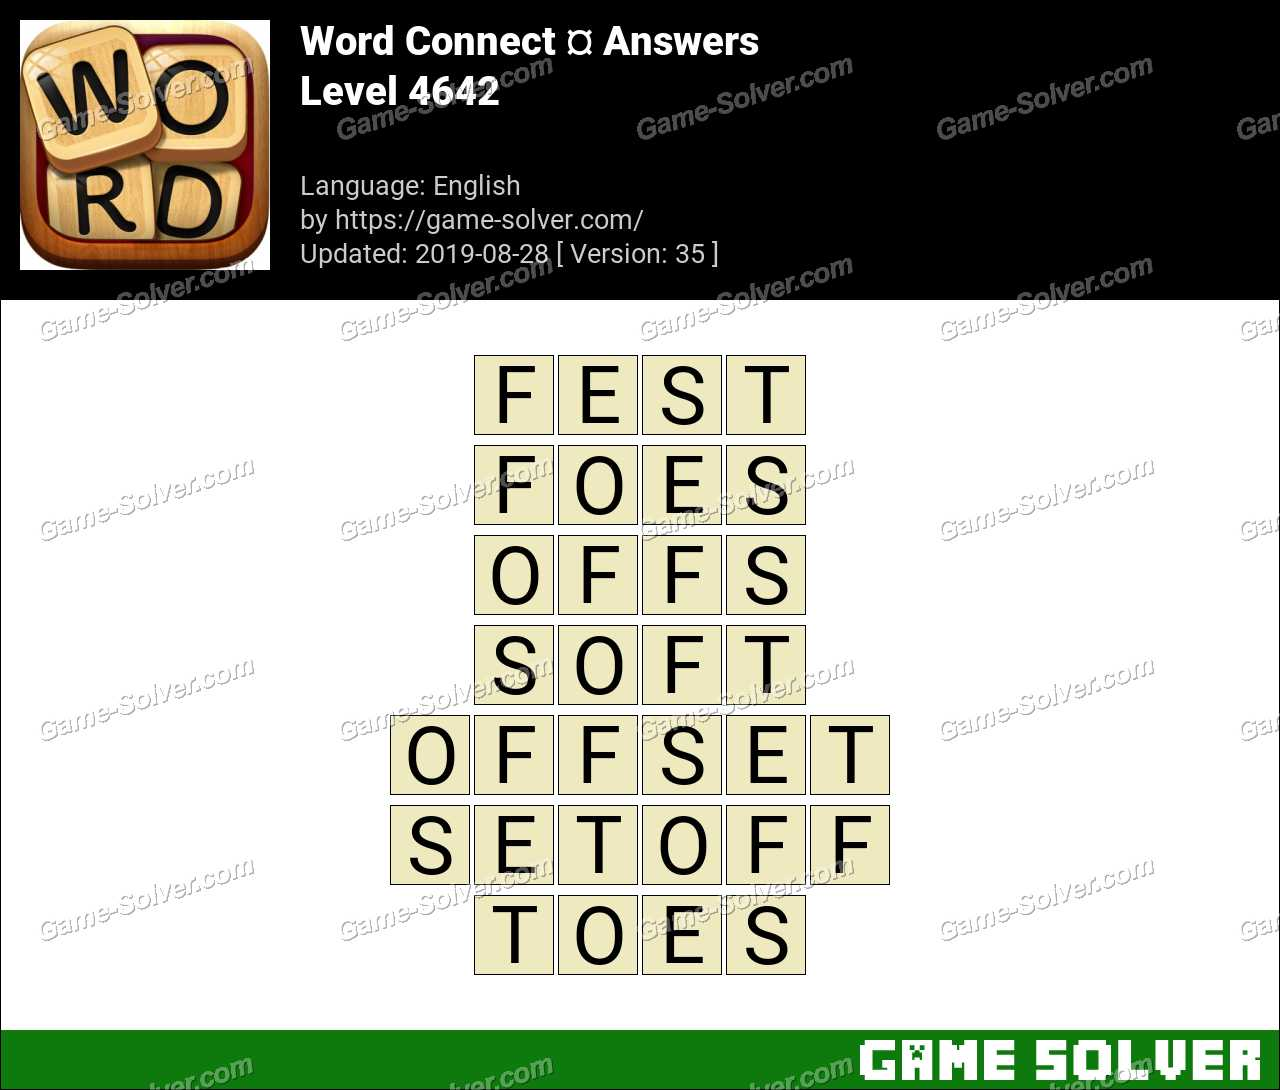 Word Connect Level 4642 Answers